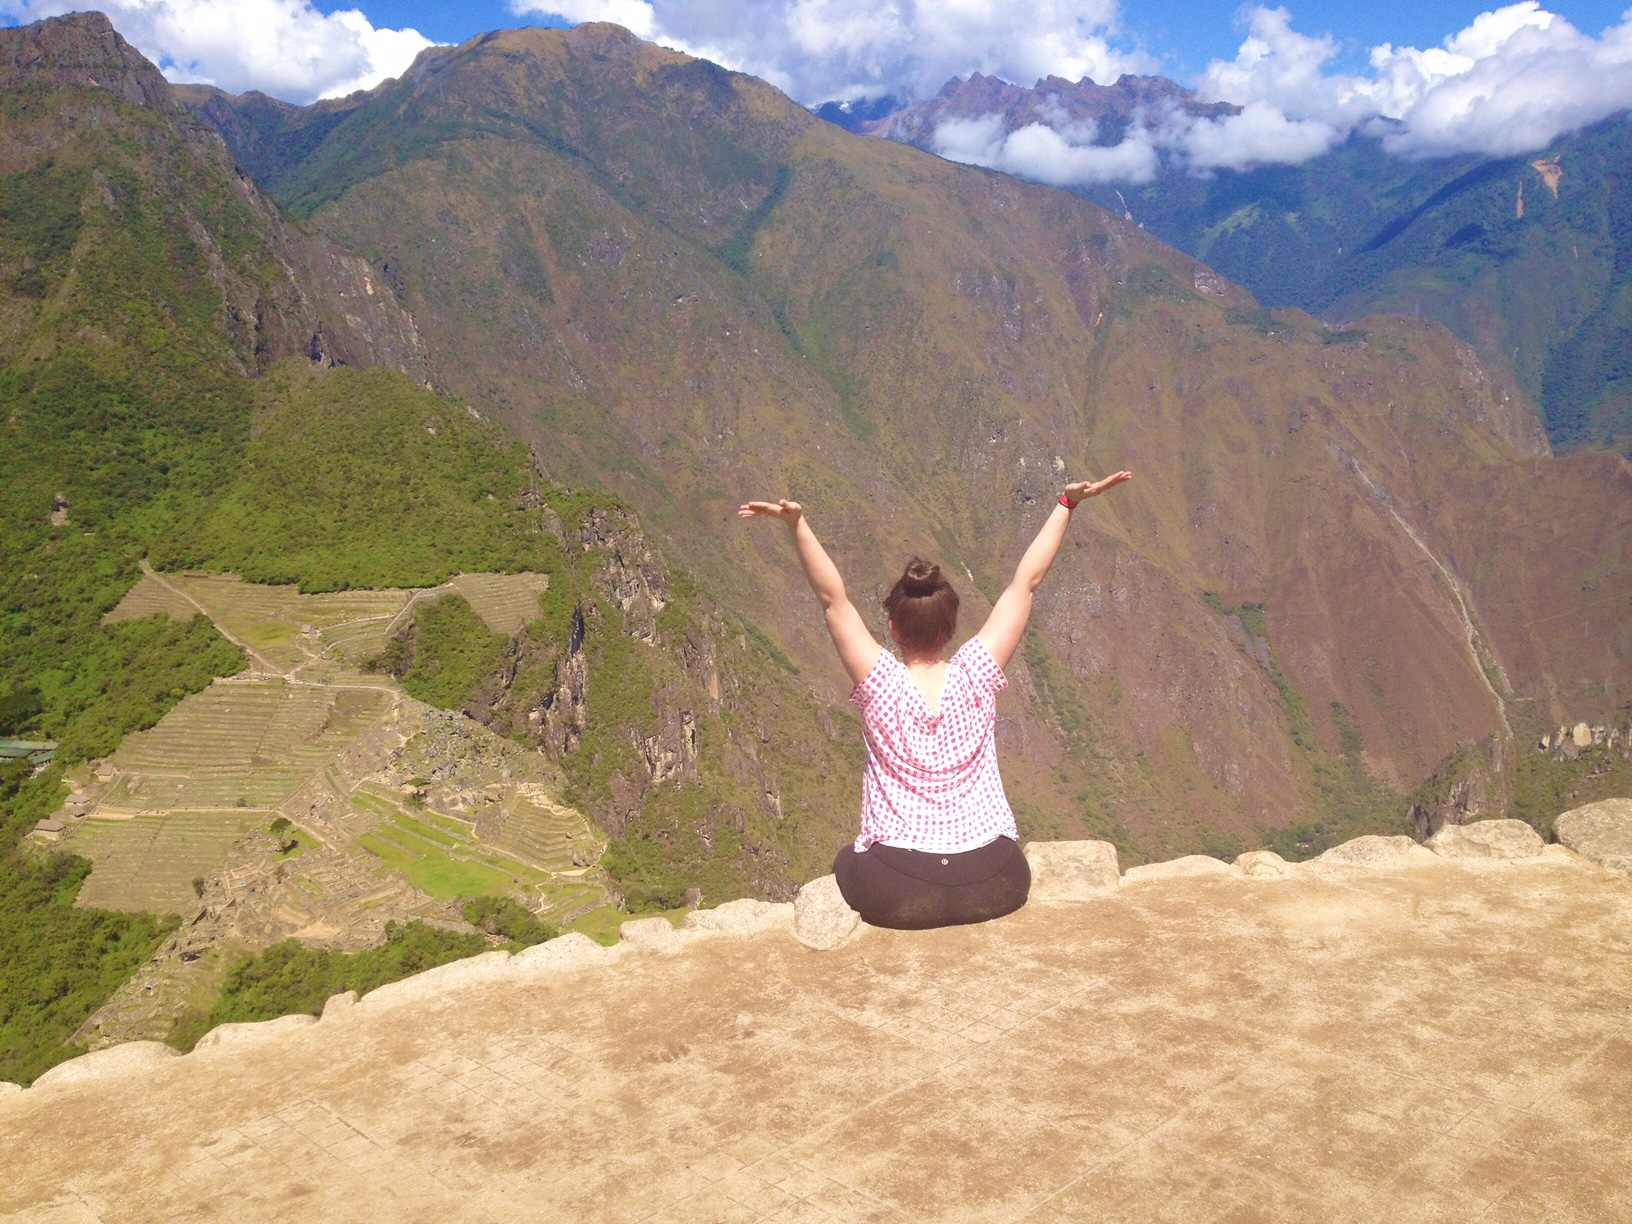 (From the top of Huayna Picchu)